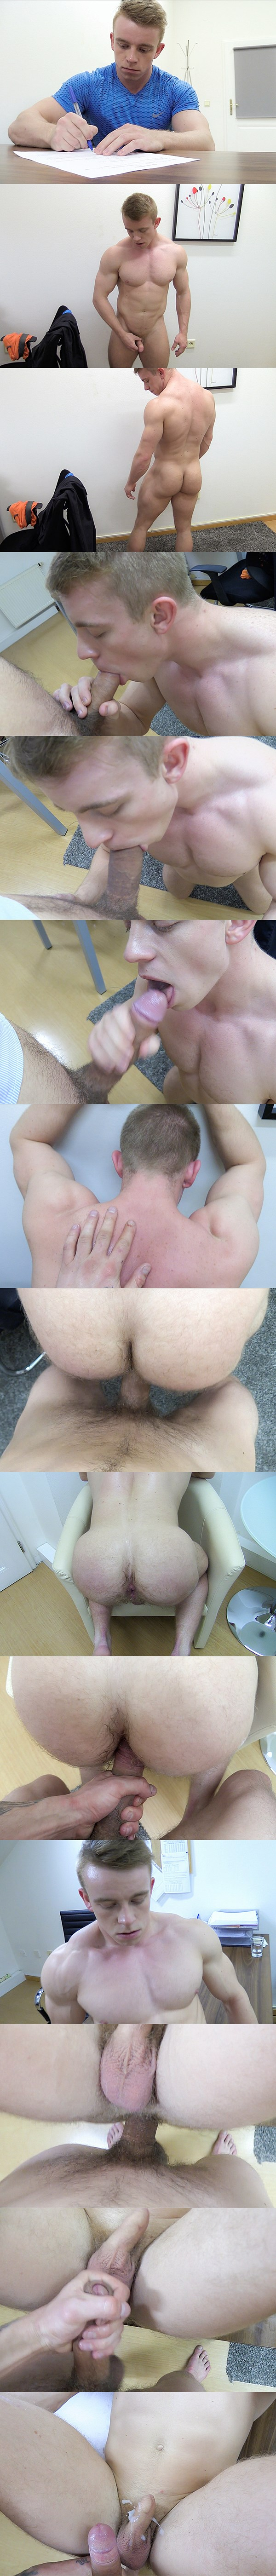 Nikol Monak barebacks a blond straight muscle jock's tight virgin ass in Dirty Scout 110 at Dirtyscout 02